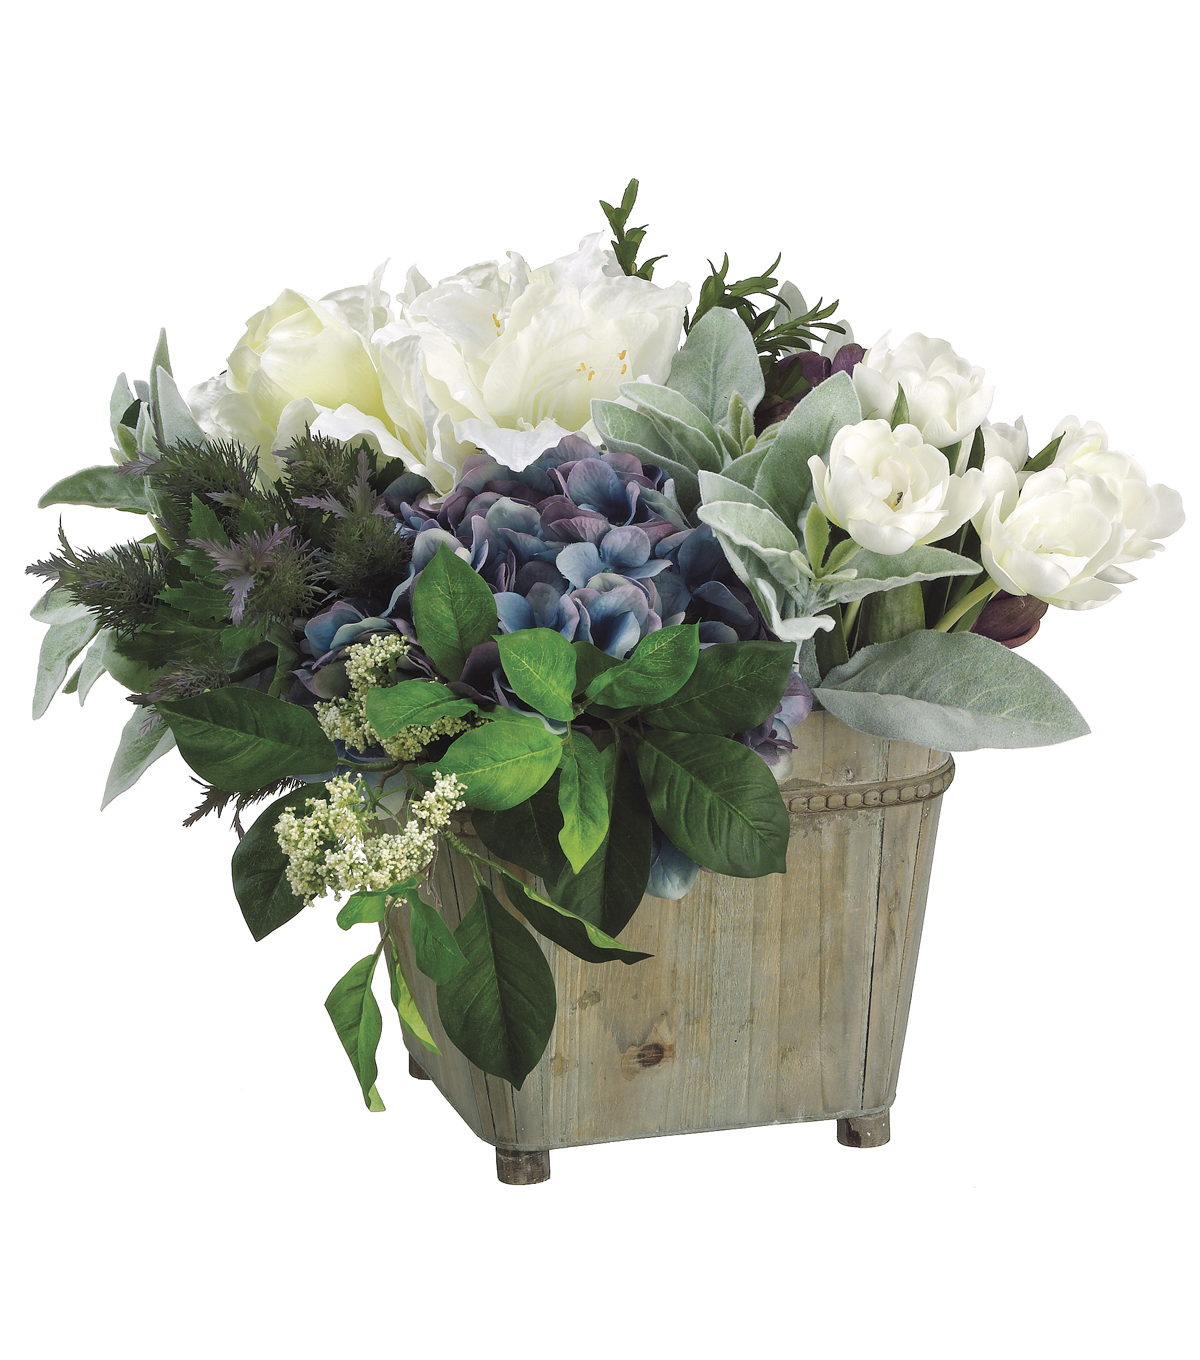 Hydrangeas, Tulips & Artichokes in Wood Container 14\u0027\u0027-White & Green